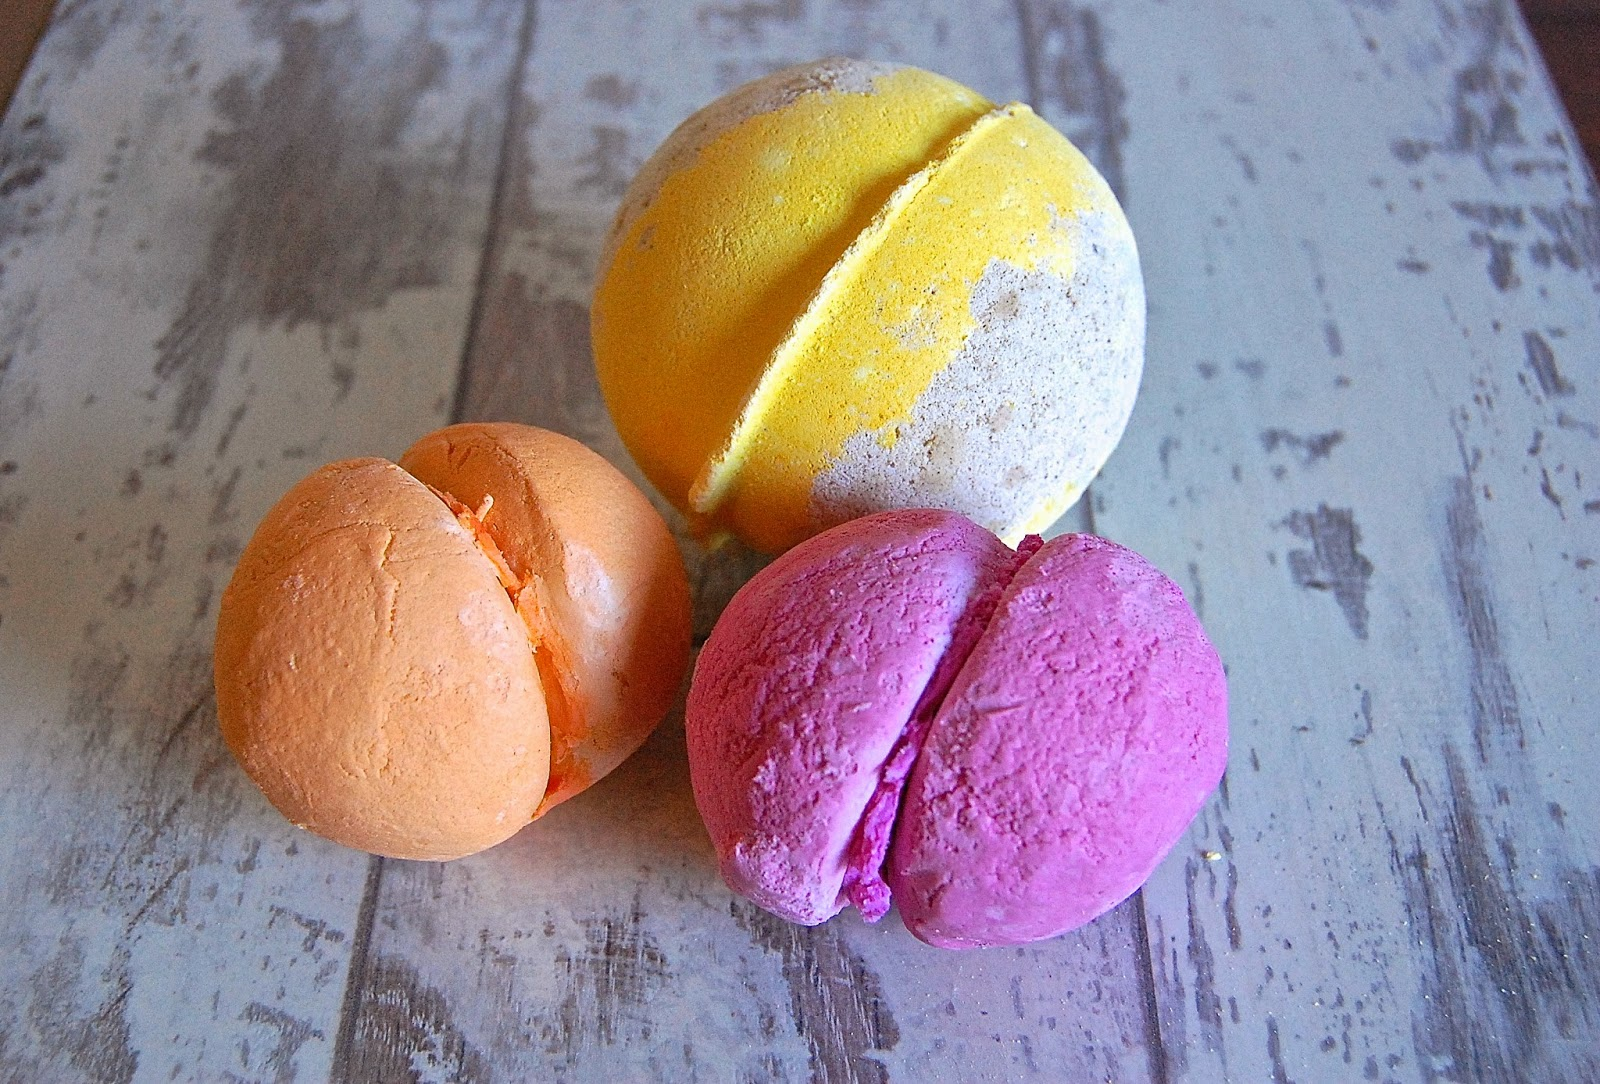 lush cosmetics, bath bomb, rose jam, bath, relax, bbloggers, running fox, afternoon tea, easter, skincare